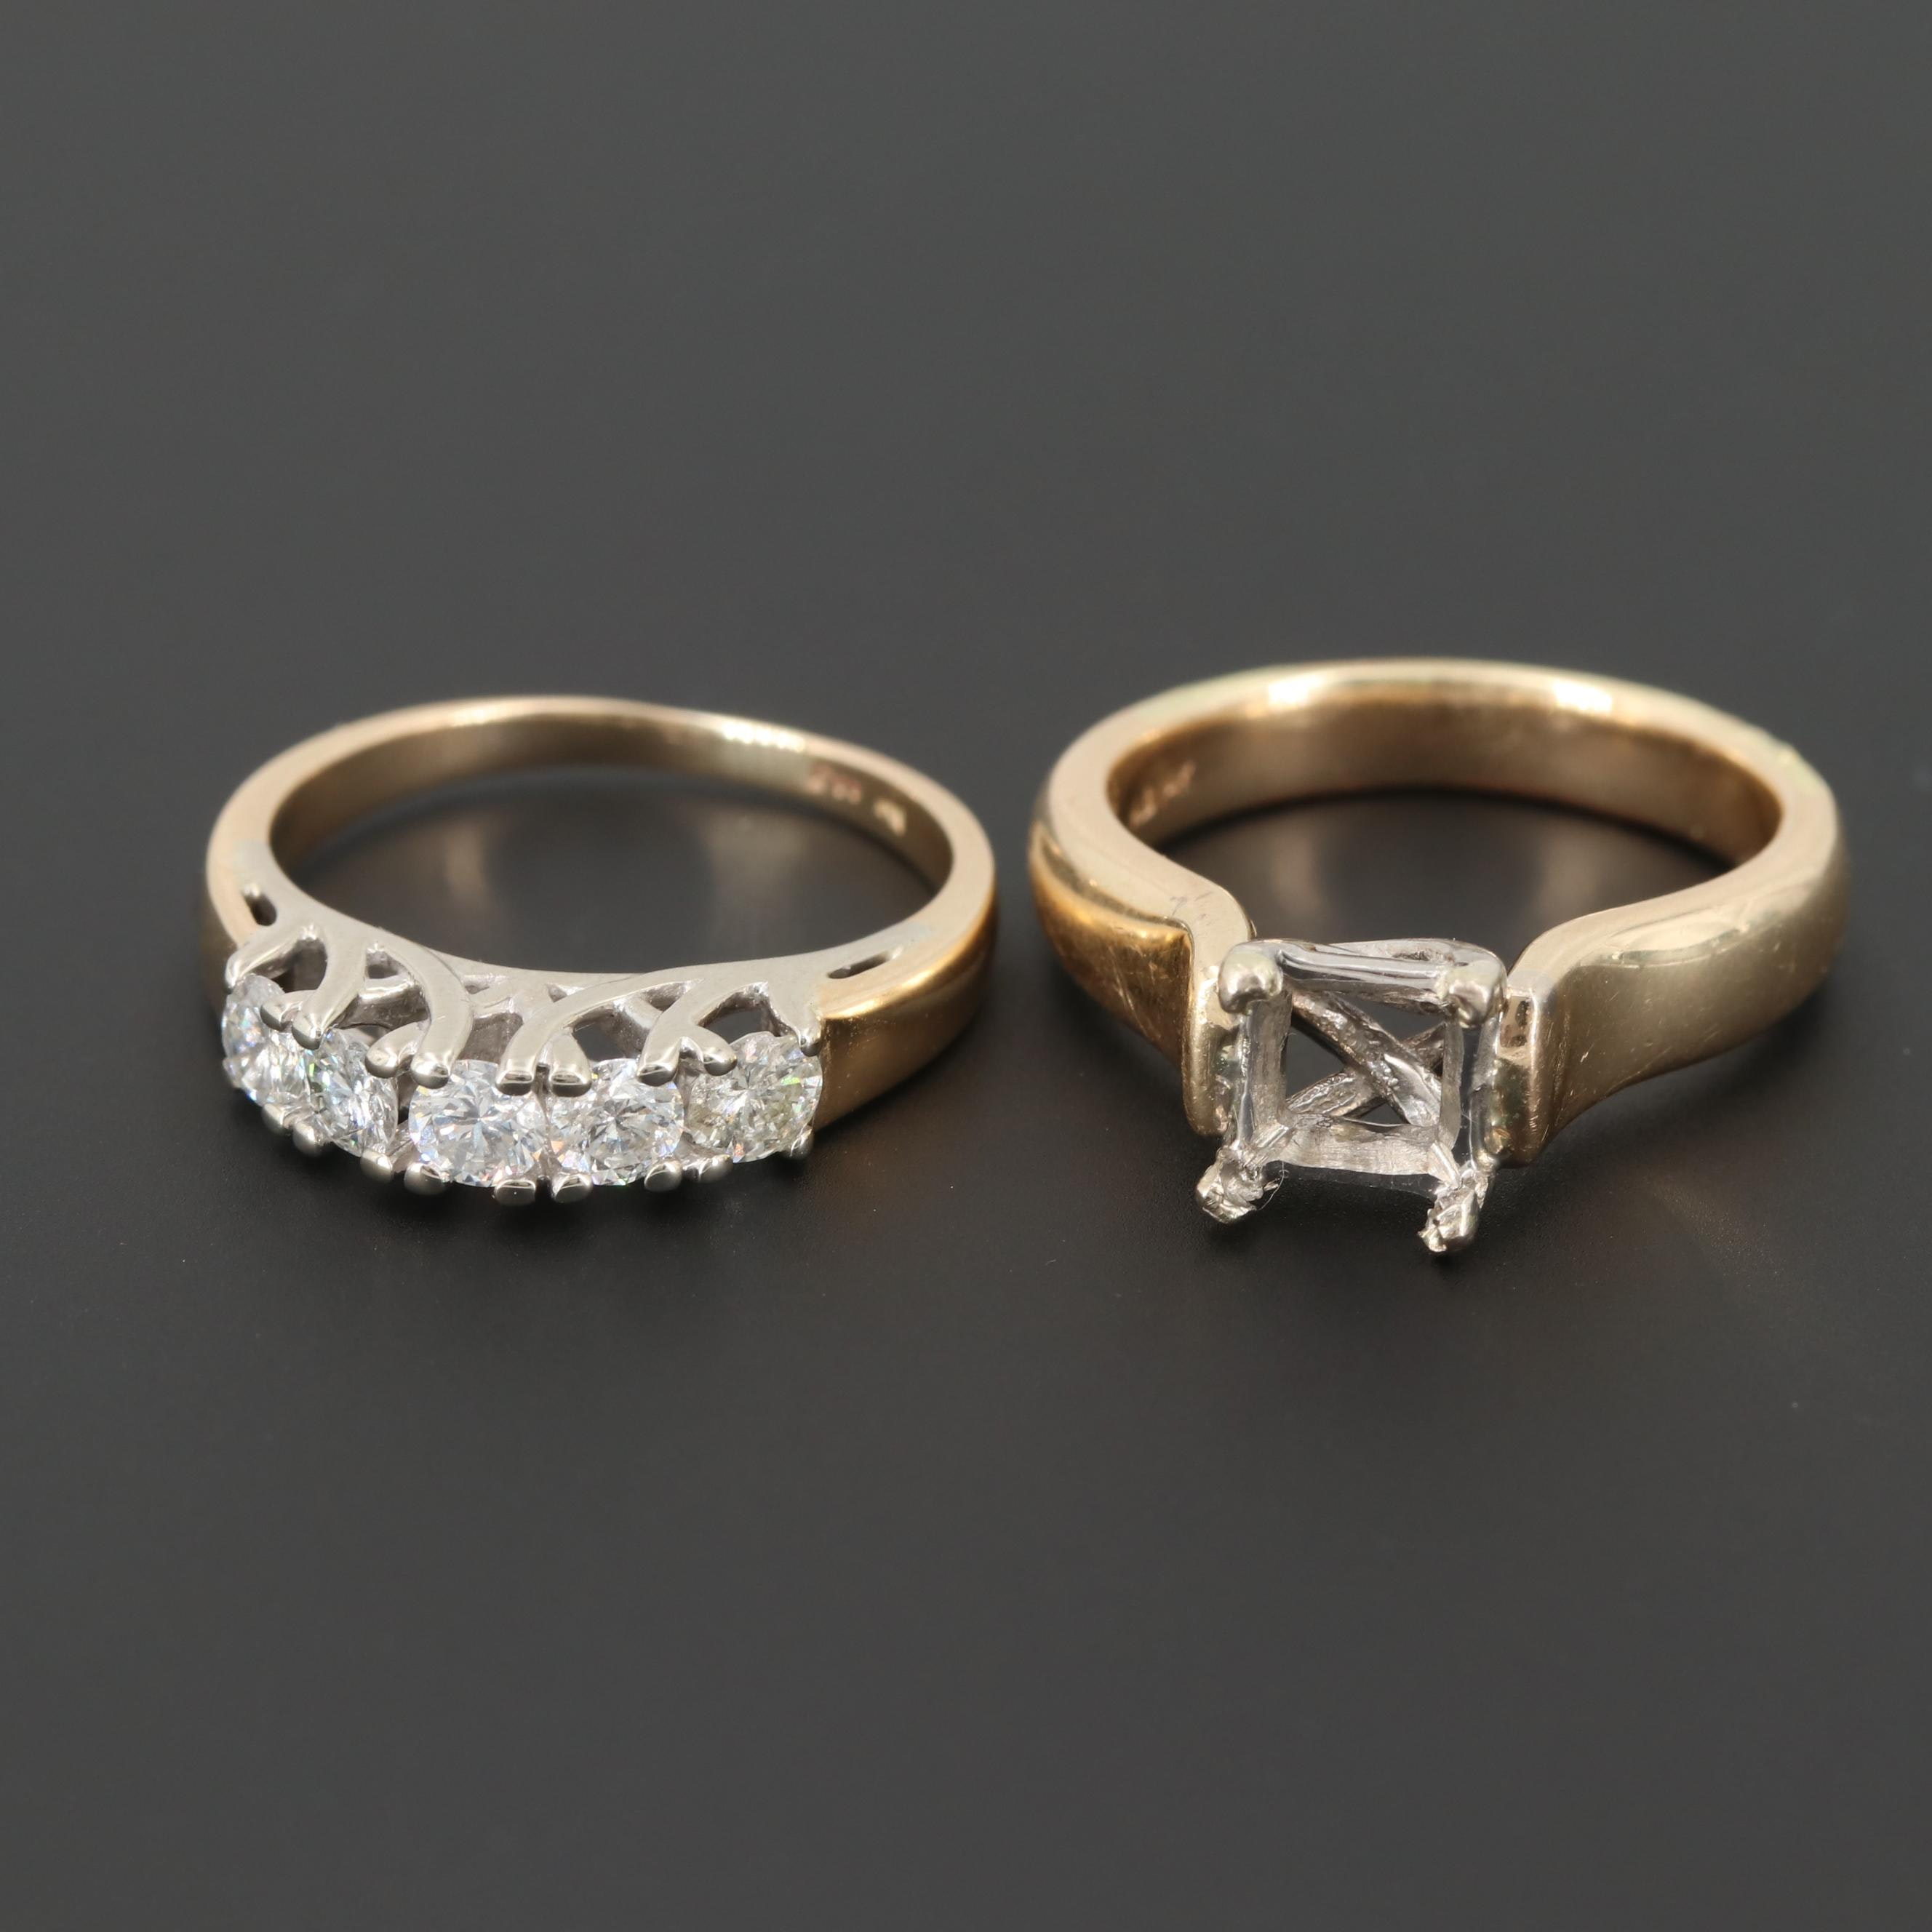 14K Yellow Gold Open Mount and Diamond Rings with White Gold Accents